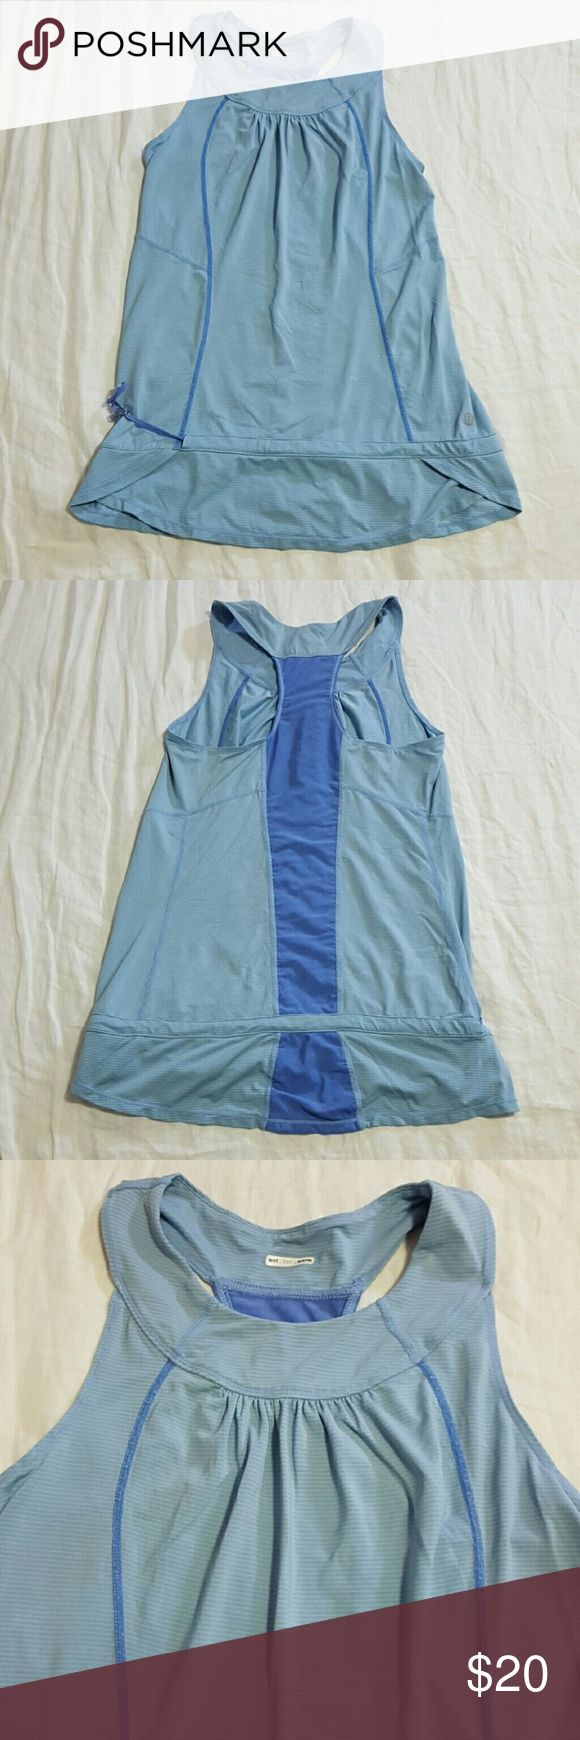 """Beautiful lululemon flowy Tank Top lululemon Blue On Blue Tank Top. Adjustable Drawstring by the wast  Tag has been removed, never had a size dot  Very good preowned condition. Washed on hand wash cycle and lined dried  Measurements  Pit to pit 14"""" Length 22"""" Size 10 lululemon athletica Tops Tank Tops"""